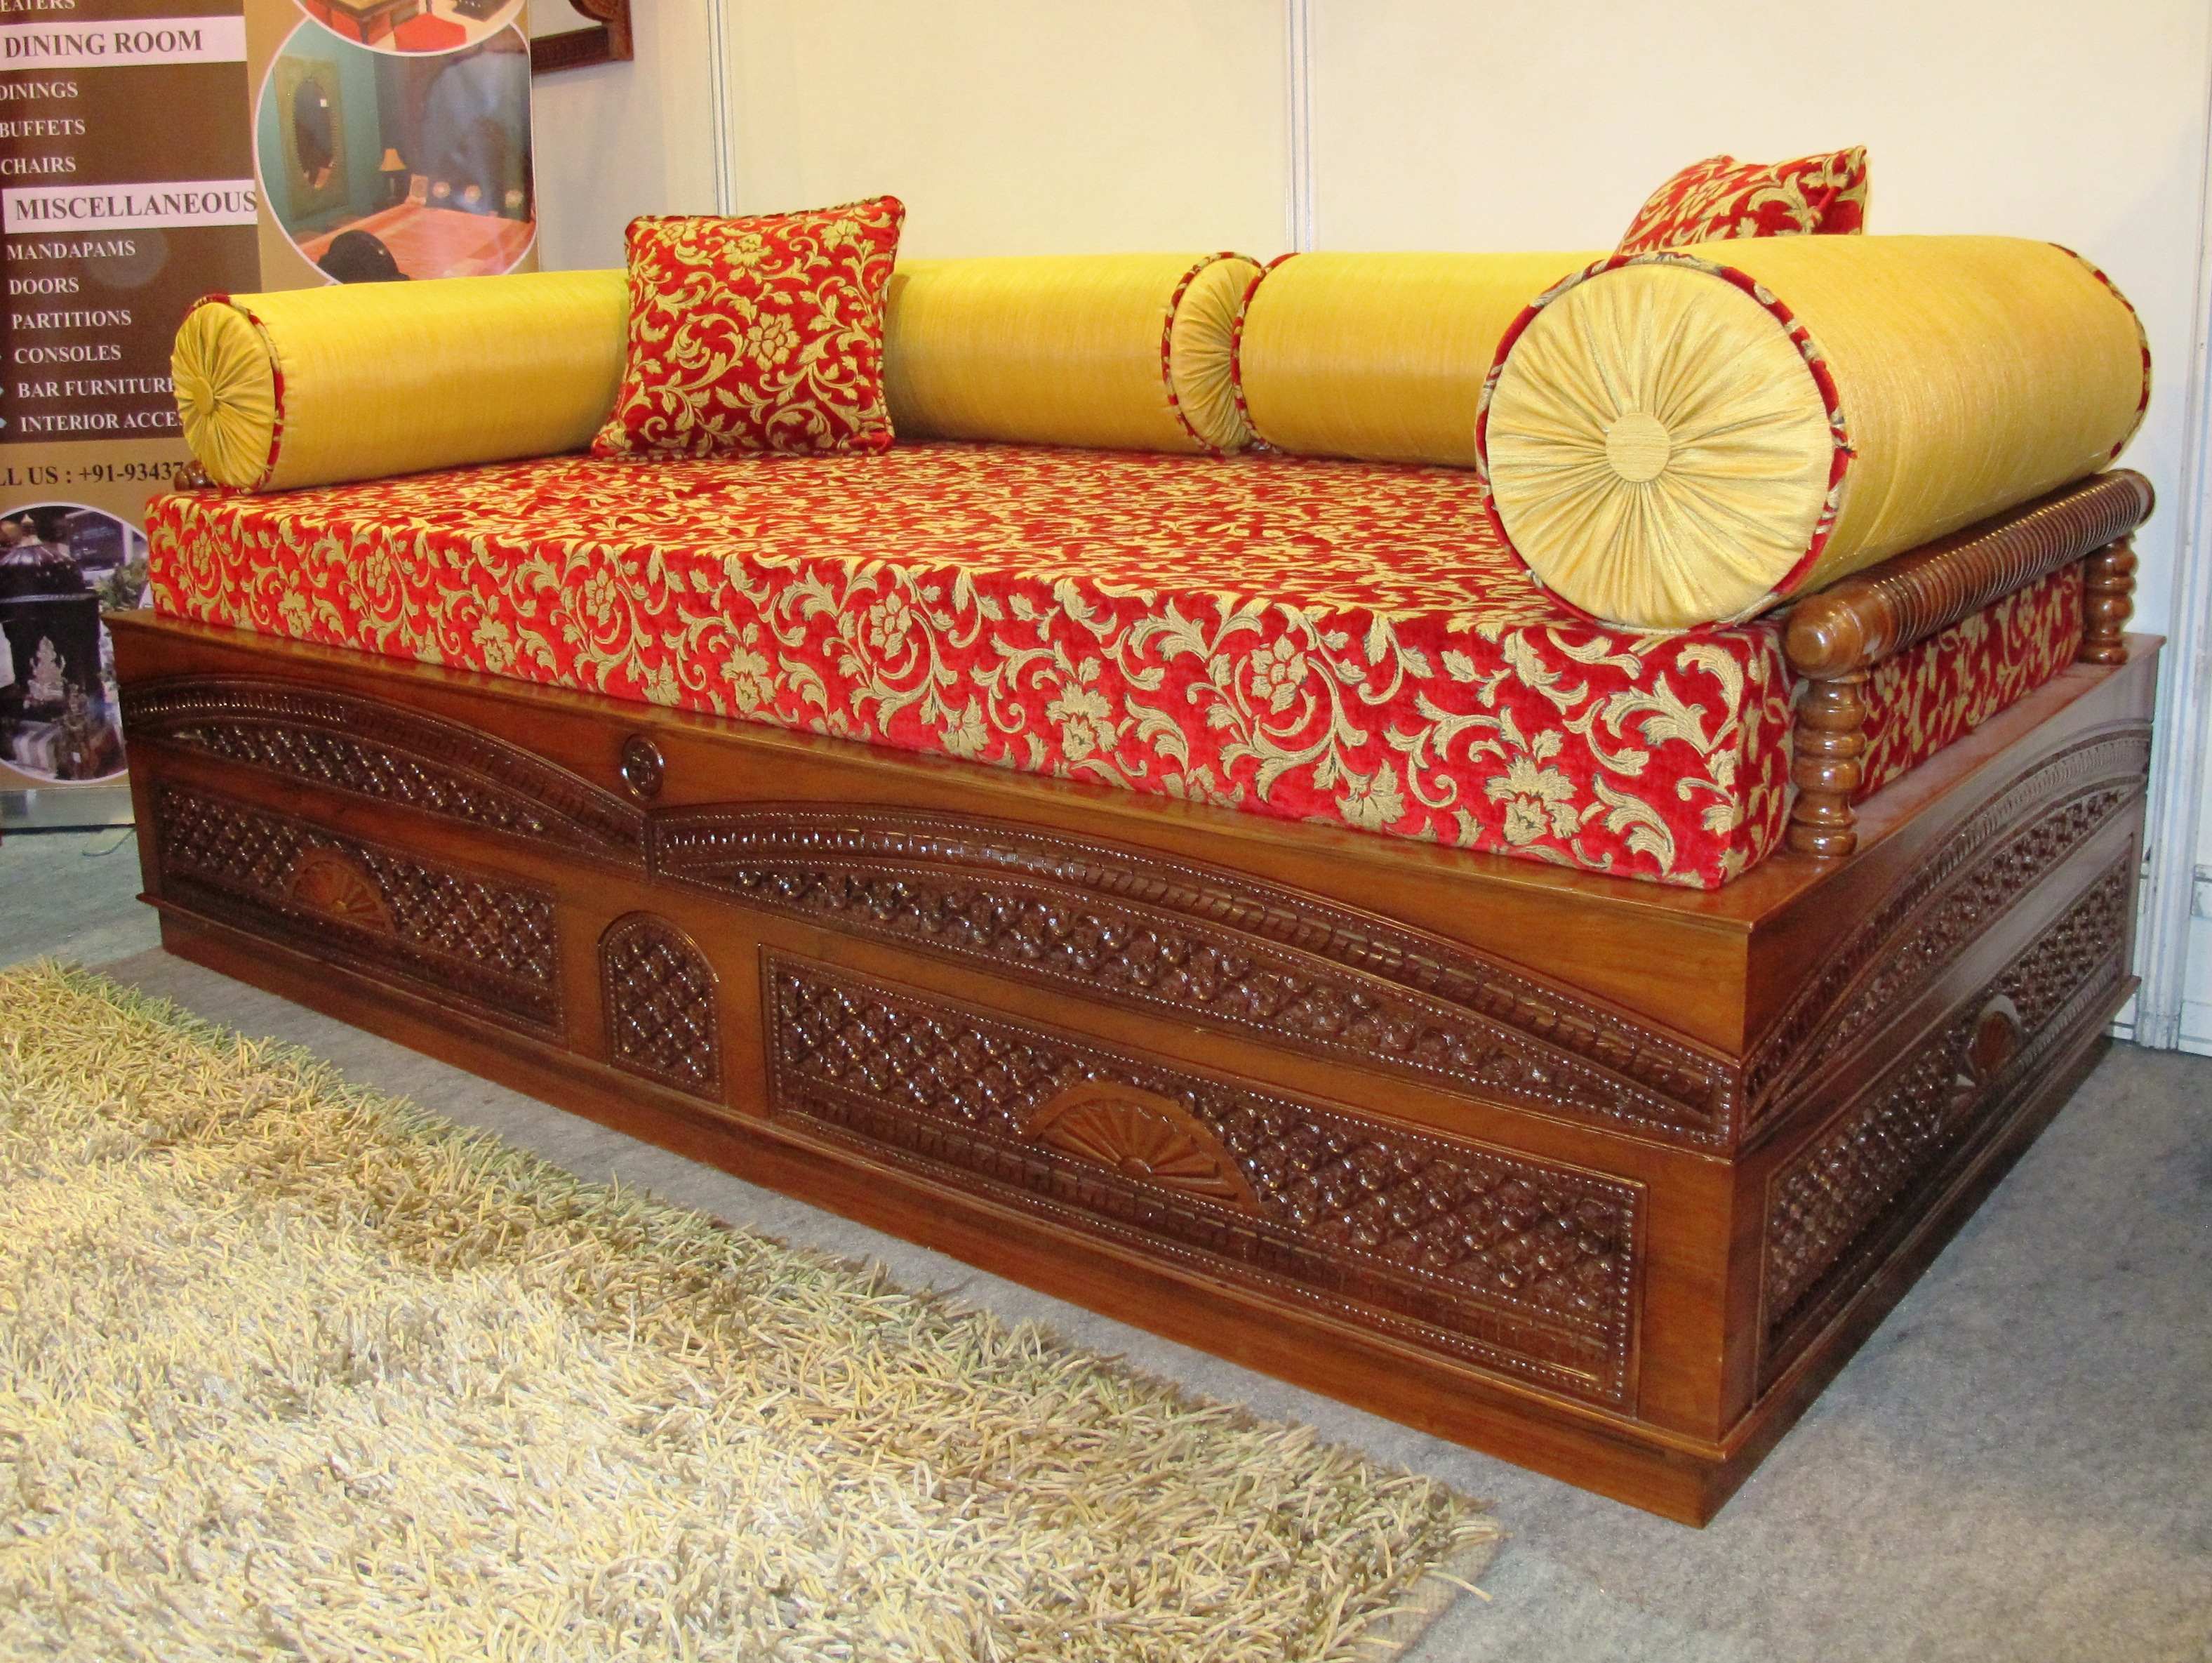 Day Bed-Deewan, Nosttaalgia